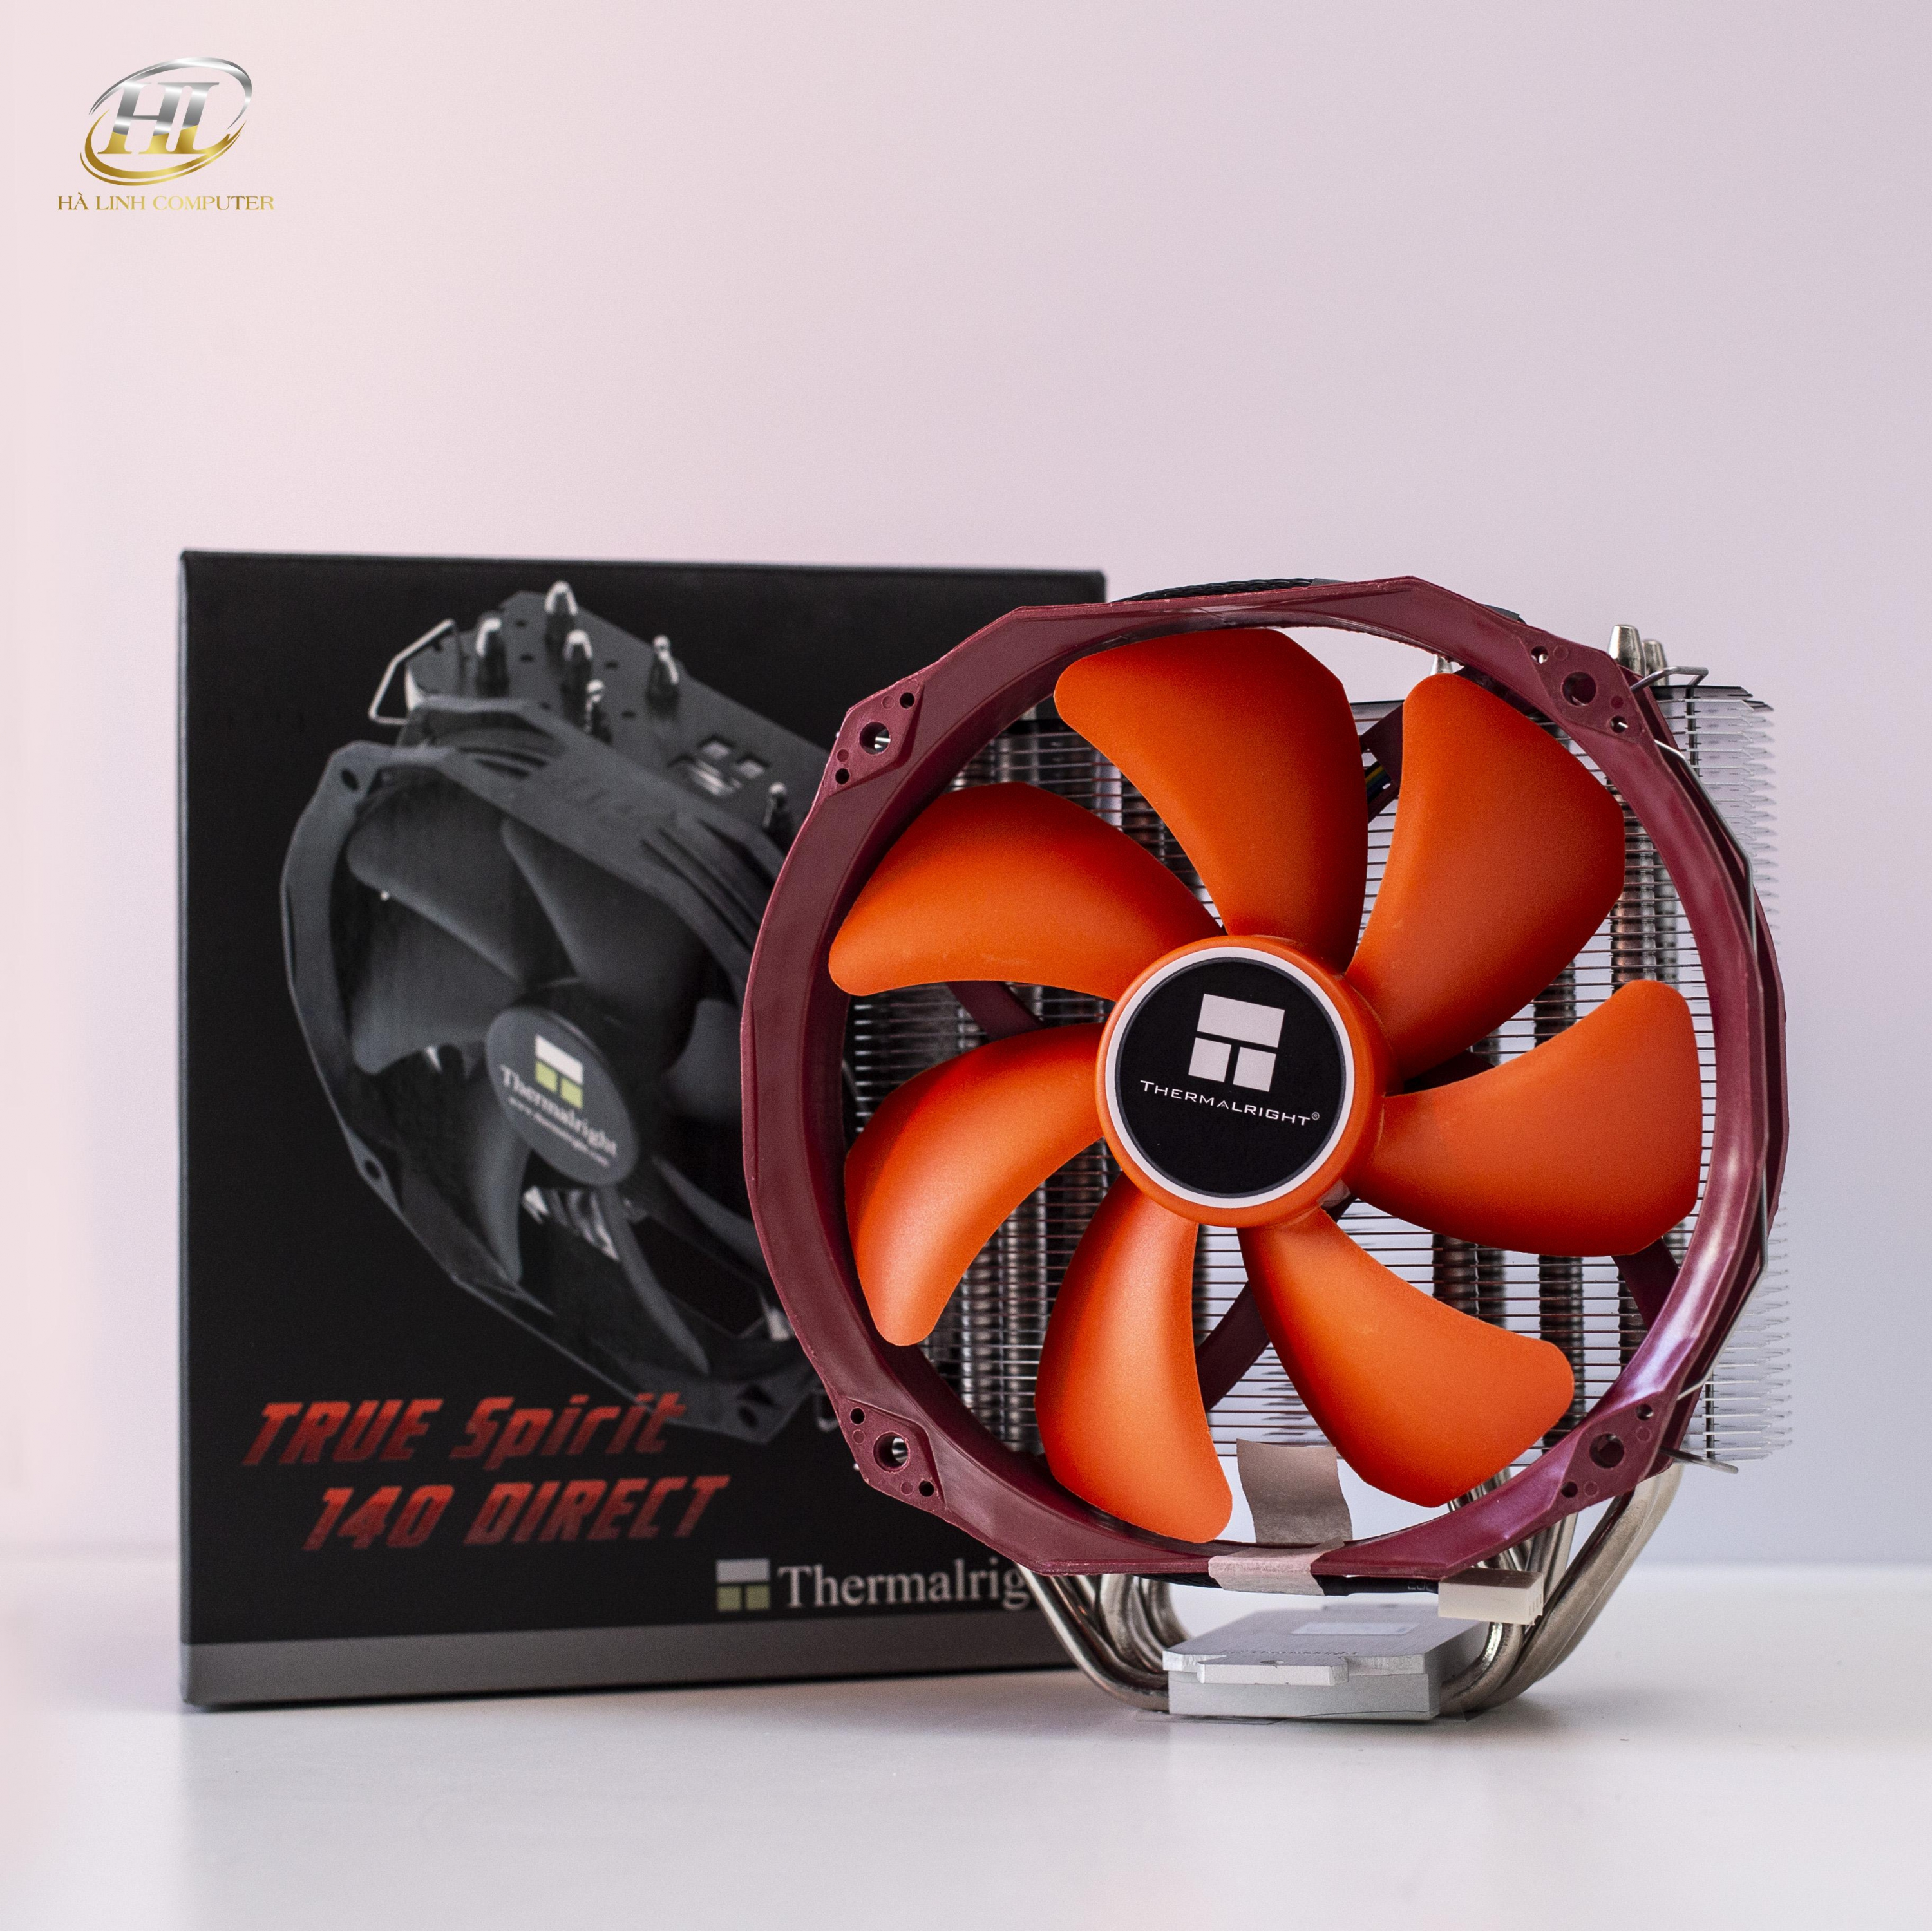 Tản nhiệt khí THERMALRIGHT TRUE SPIRIT 140 DIRECT